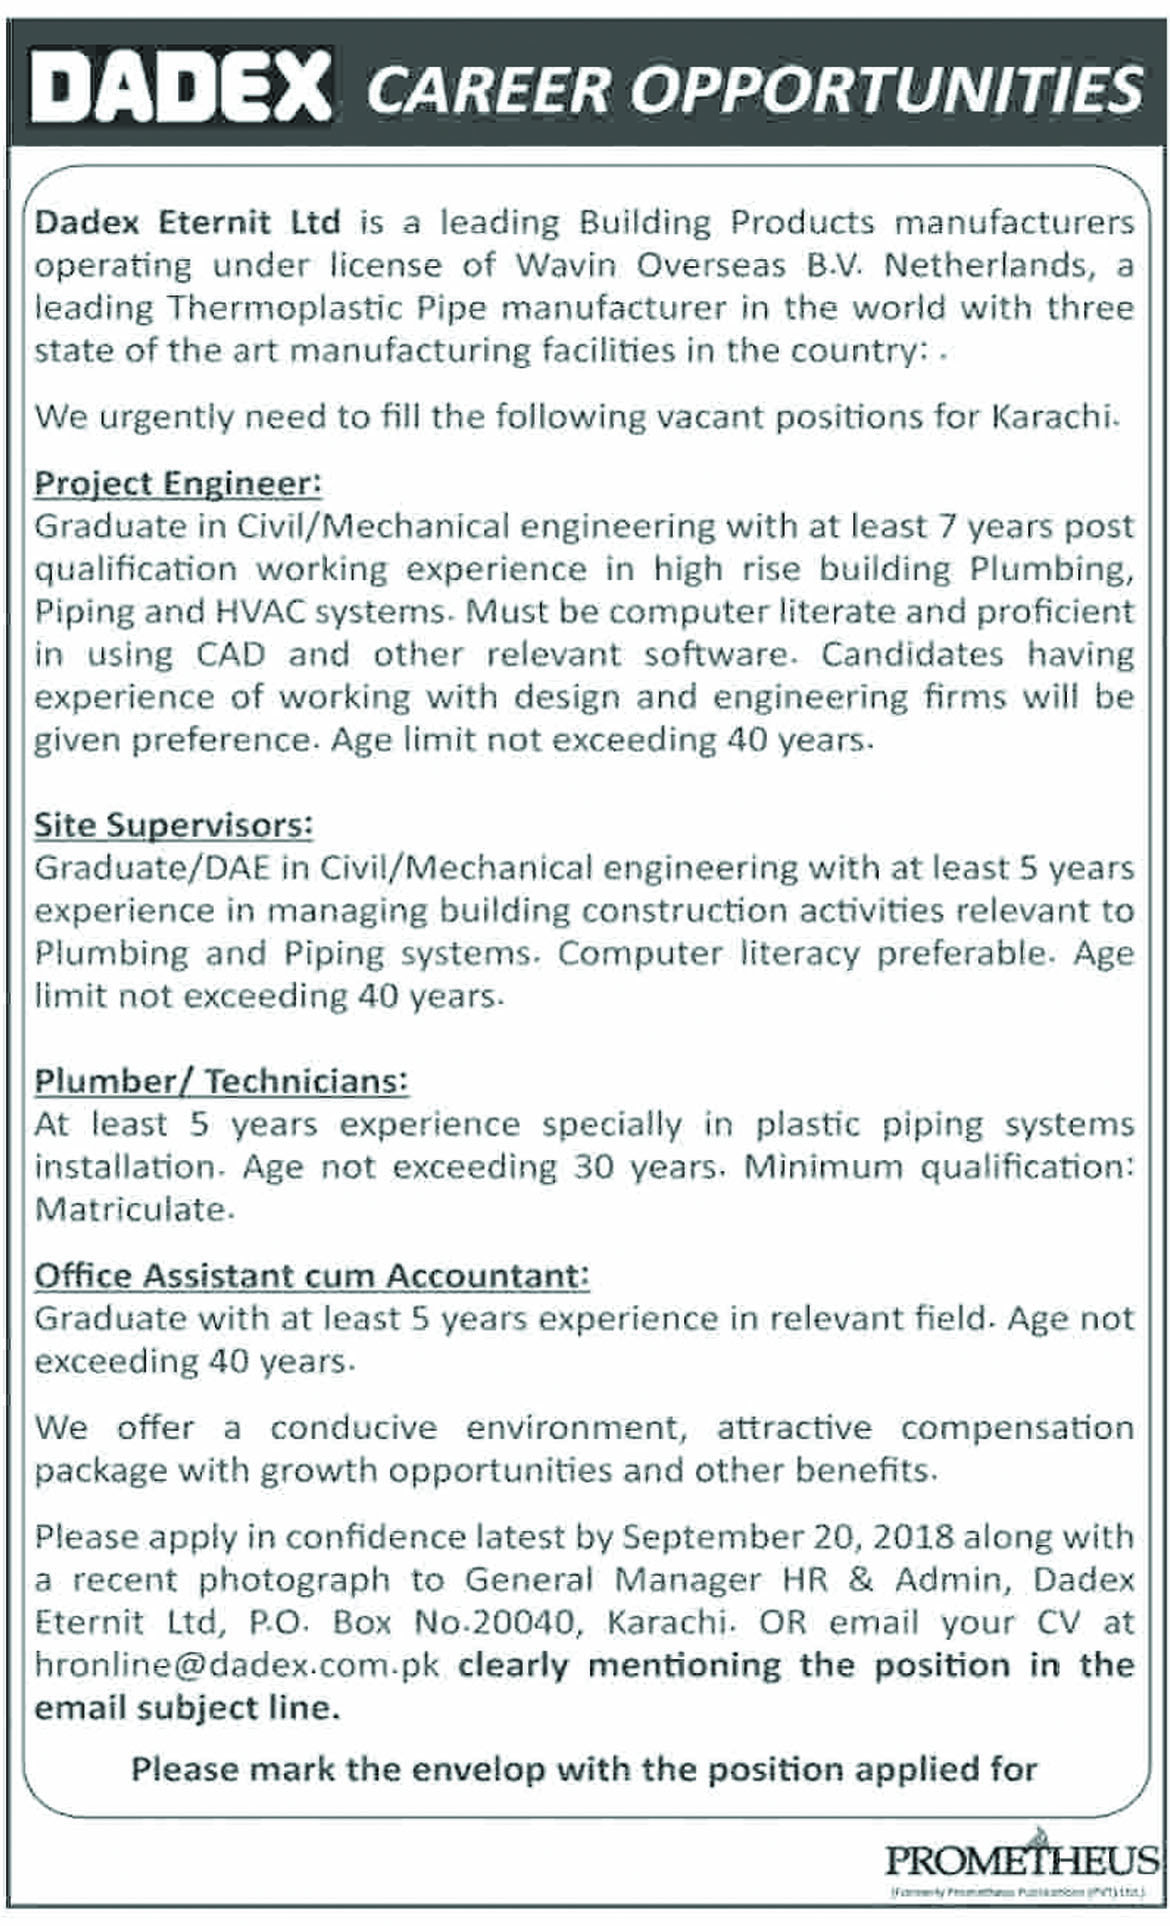 Jobs In Dadex Eternit Limited 10 Sep 2018